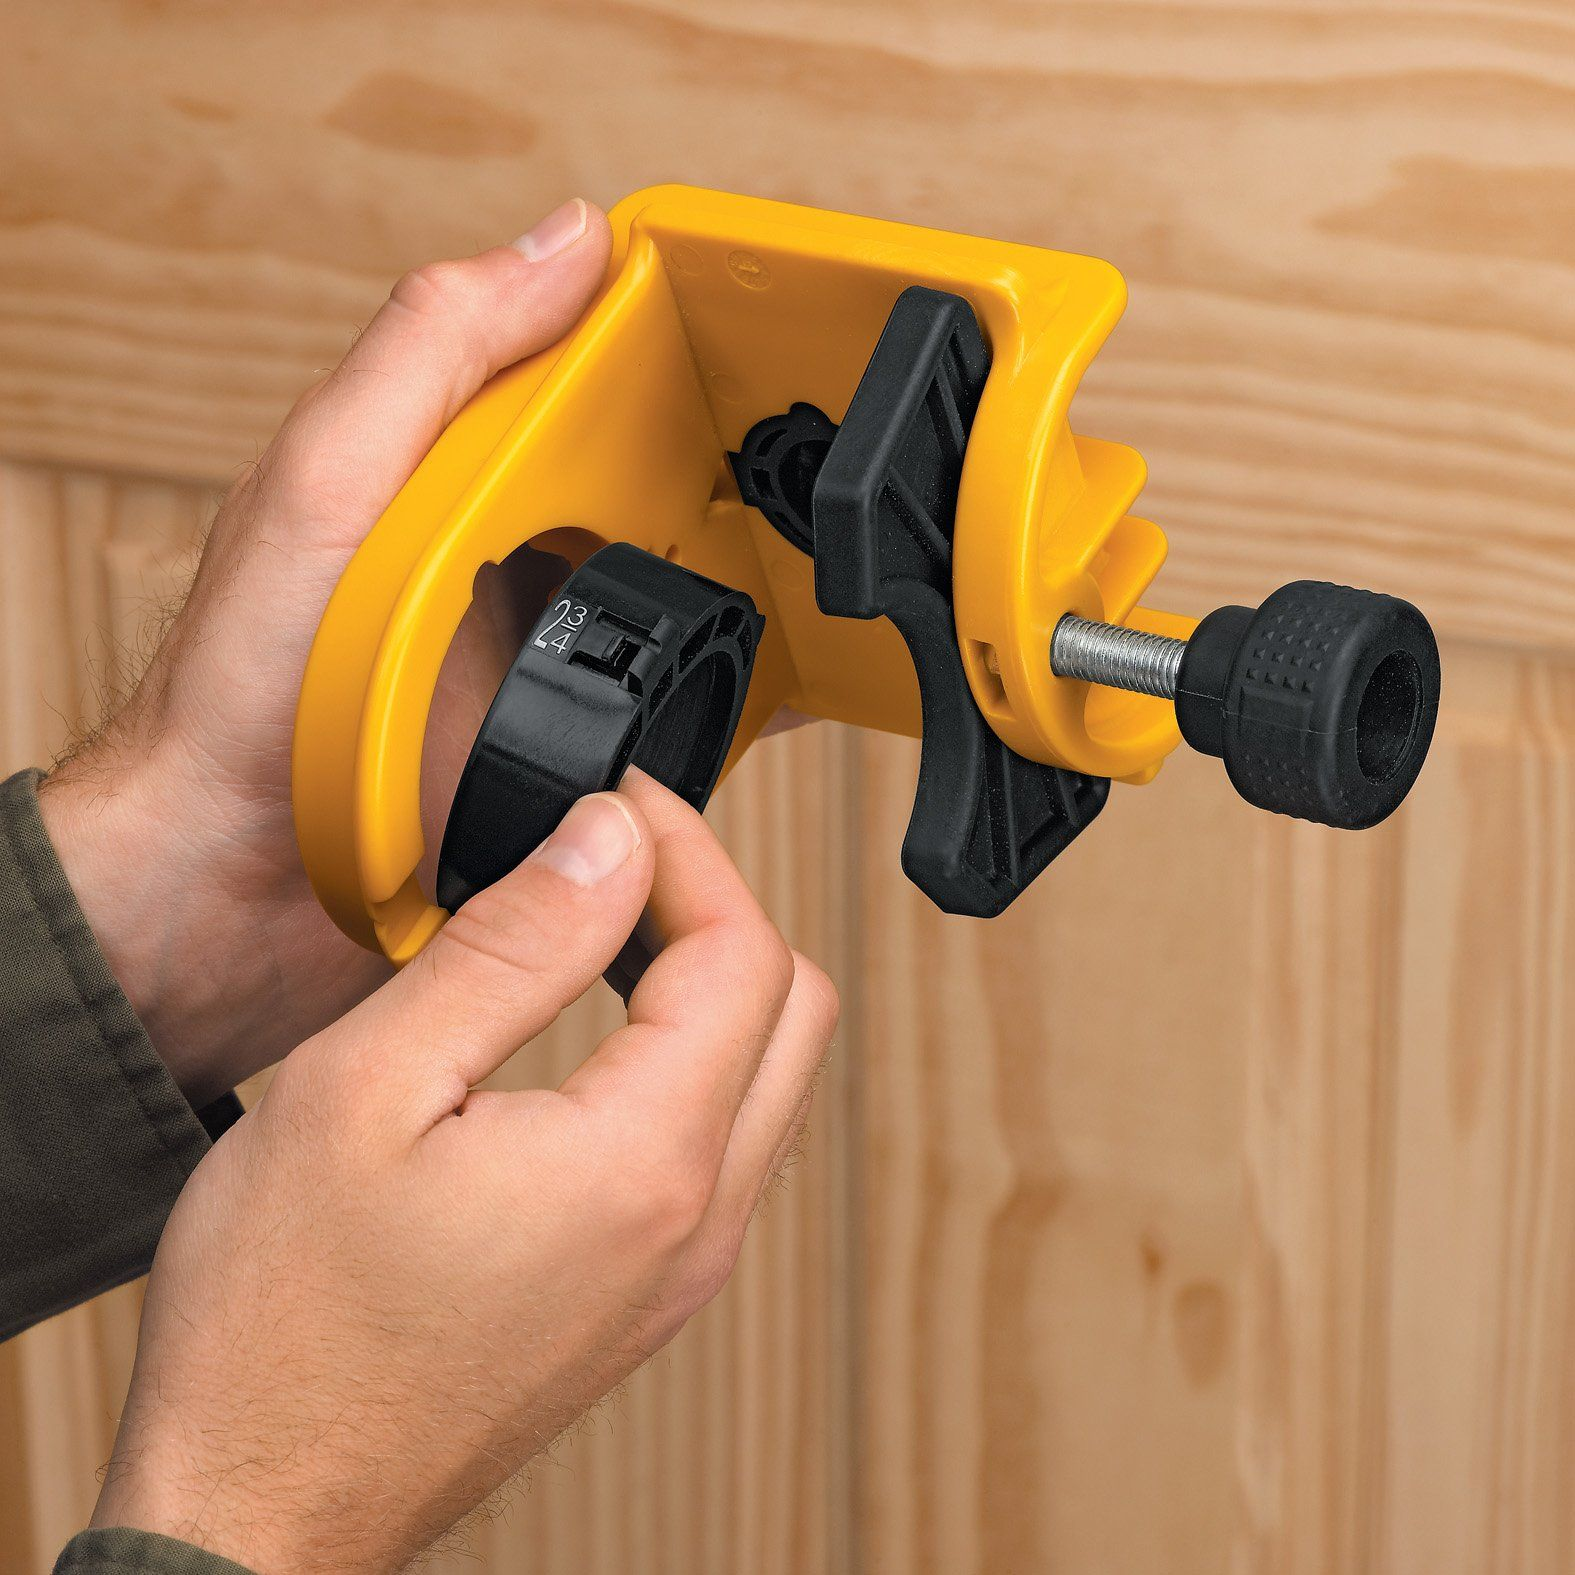 Dewalt D180004 Bimetal Door Lock Installation Kit Inspect This Awesome Item By Mosting Likely To T With Images Door Lock Installation Kit Woodworking Tools Installation